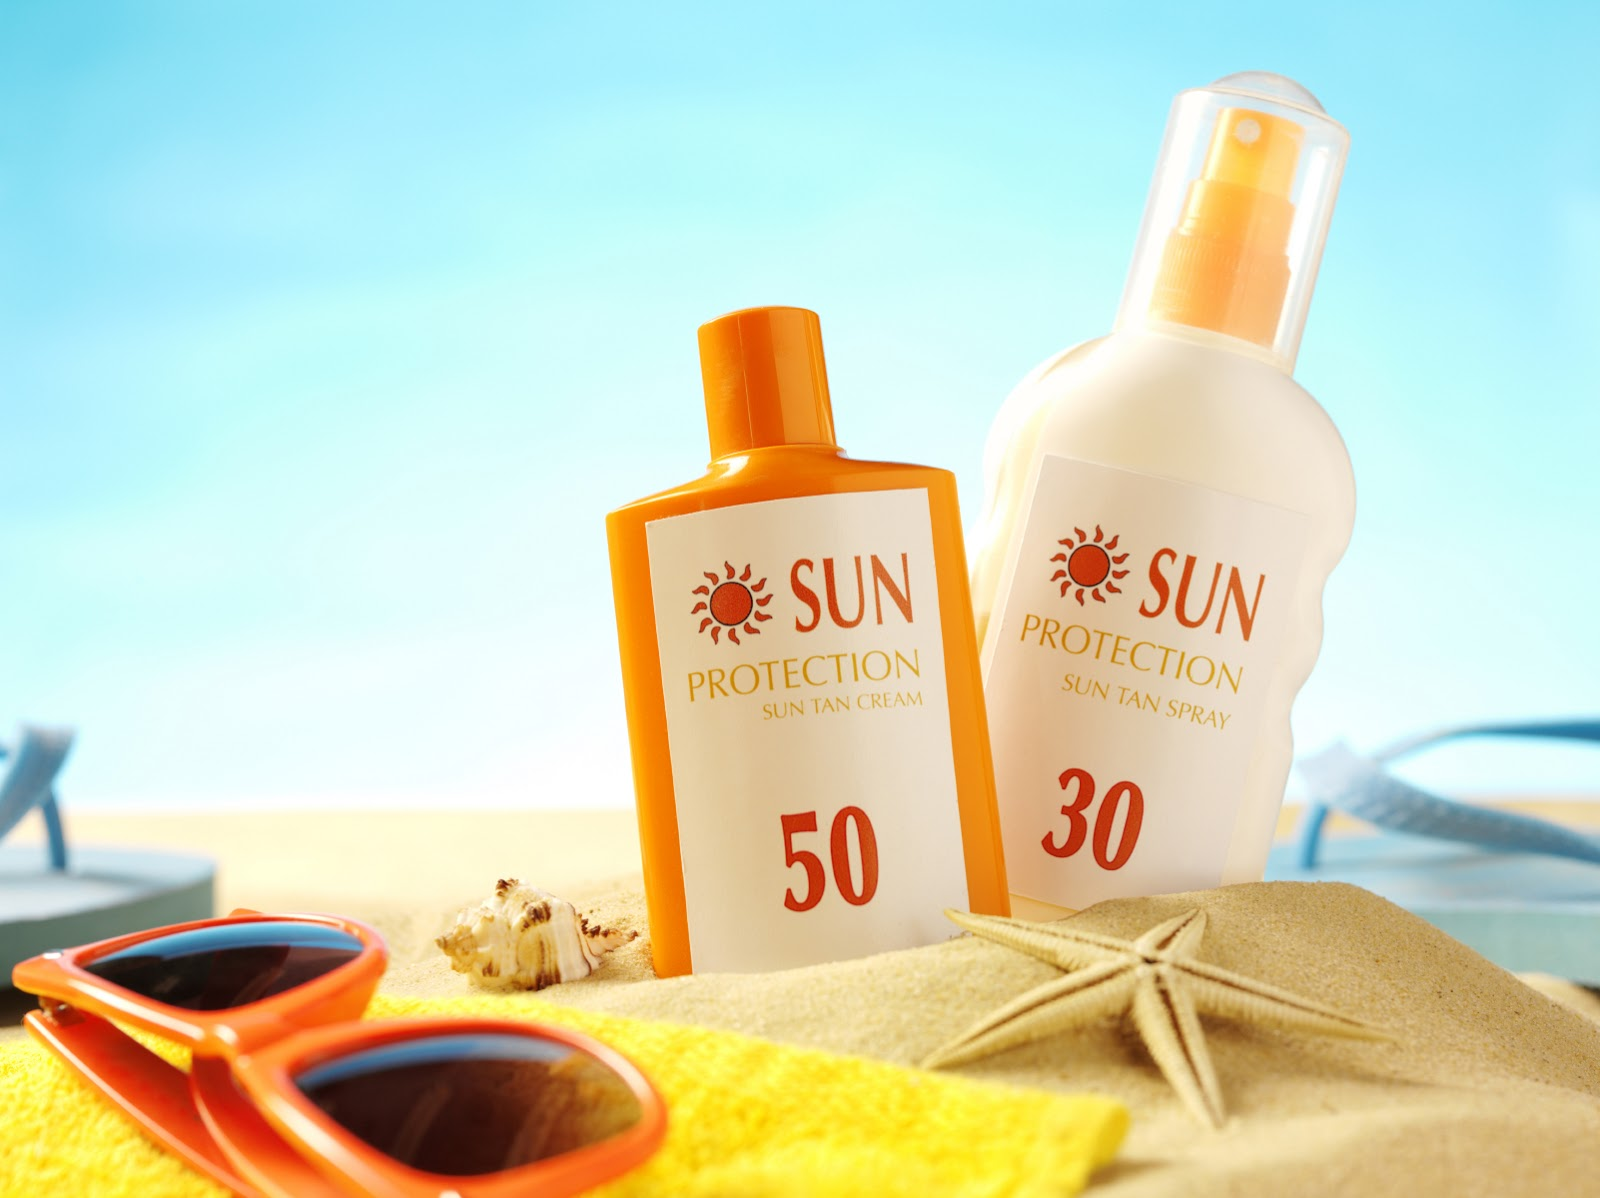 5 Ways to Protect Skin from Sun photo